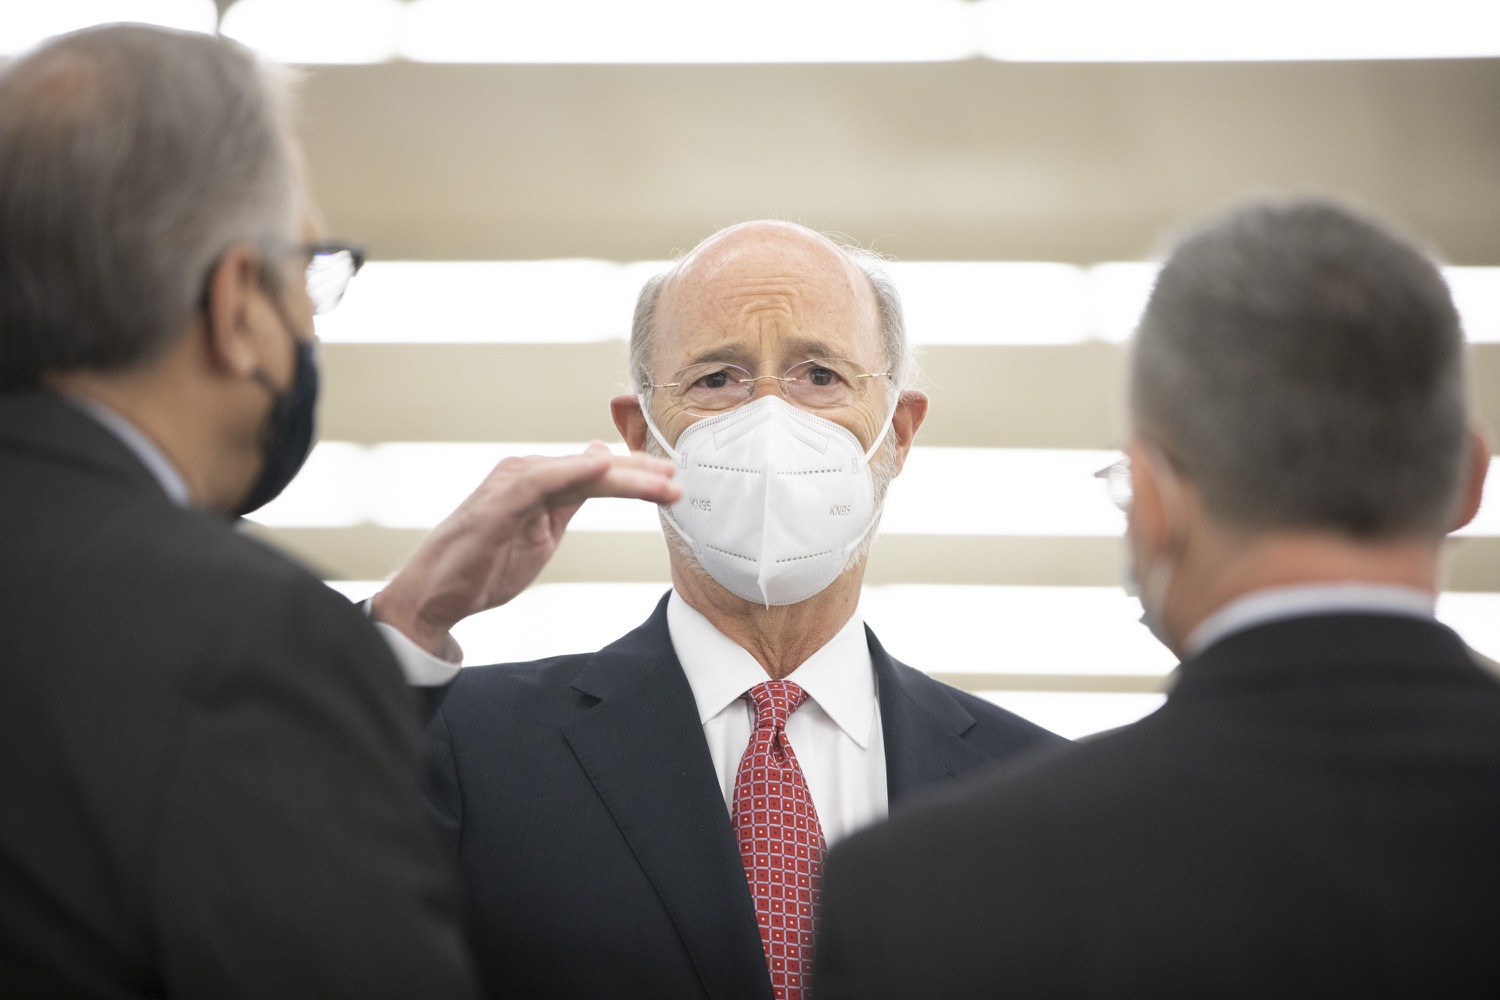 """<a href=""""https://filesource.wostreaming.net/commonwealthofpa/photo/18682_gov_vaccineClinic_dz_028.jpg"""" target=""""_blank"""">⇣Download Photo<br></a>Pennsylvania Governor Tom Wolf speaking with Joseph Scopelliti, MD President and CEO The Guthrie Clinic and Dr. J. Michael Scalzone, MD.  .  Governor Tom Wolf today visited the Guthrie Health vaccine clinic in Sayre, Bradford County today to tour this clinic providing vaccines to a large swath of rural residents and to talk about progress in vaccinating Pennsylvanians now that eligibility is open to all individuals age 16 and older.  Sayre, PA   April 21, 2021"""